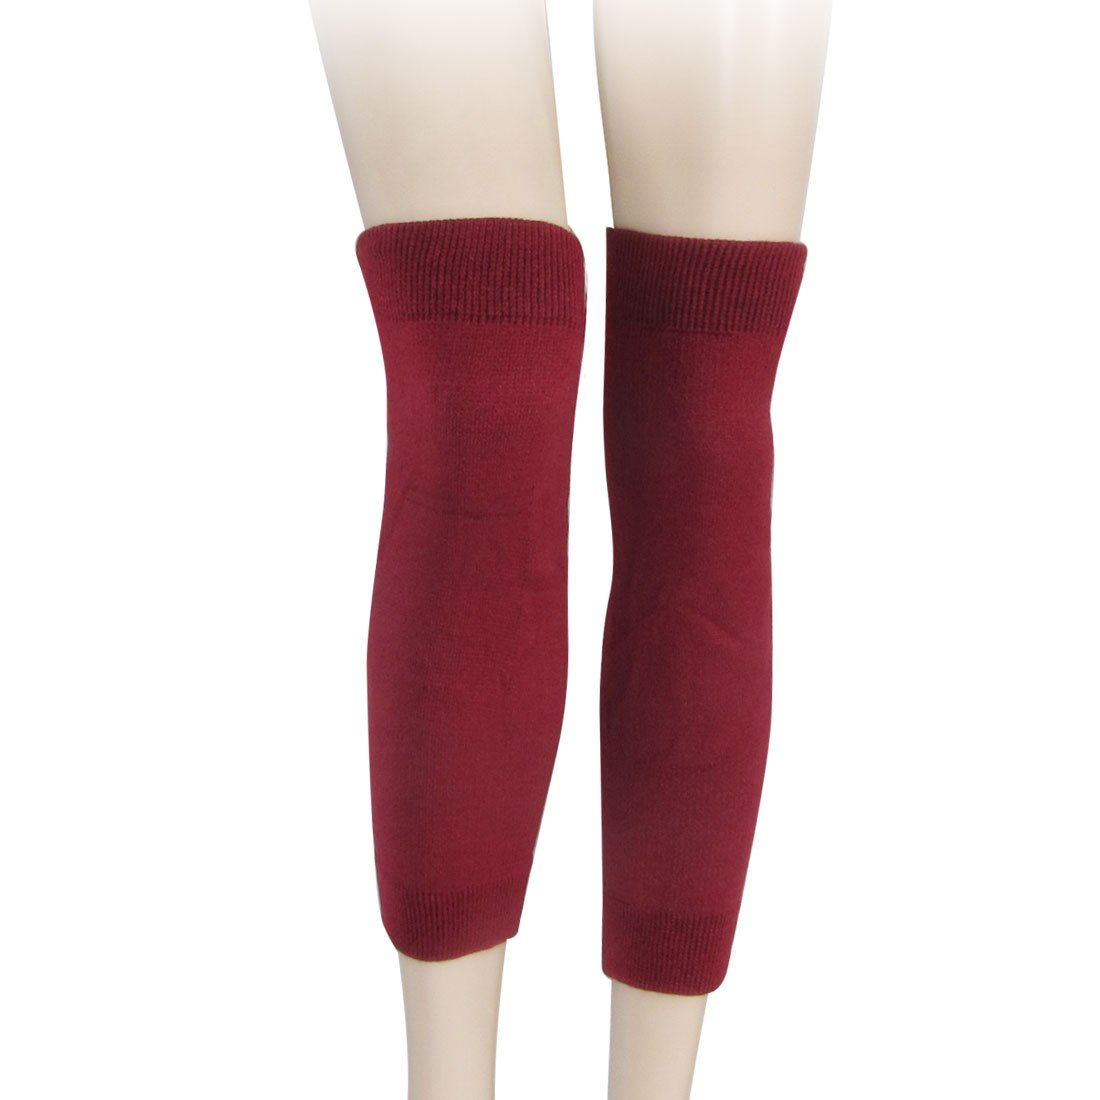 MOOL Pair Burgundy Knitted Elastic Knee Warmers for Women